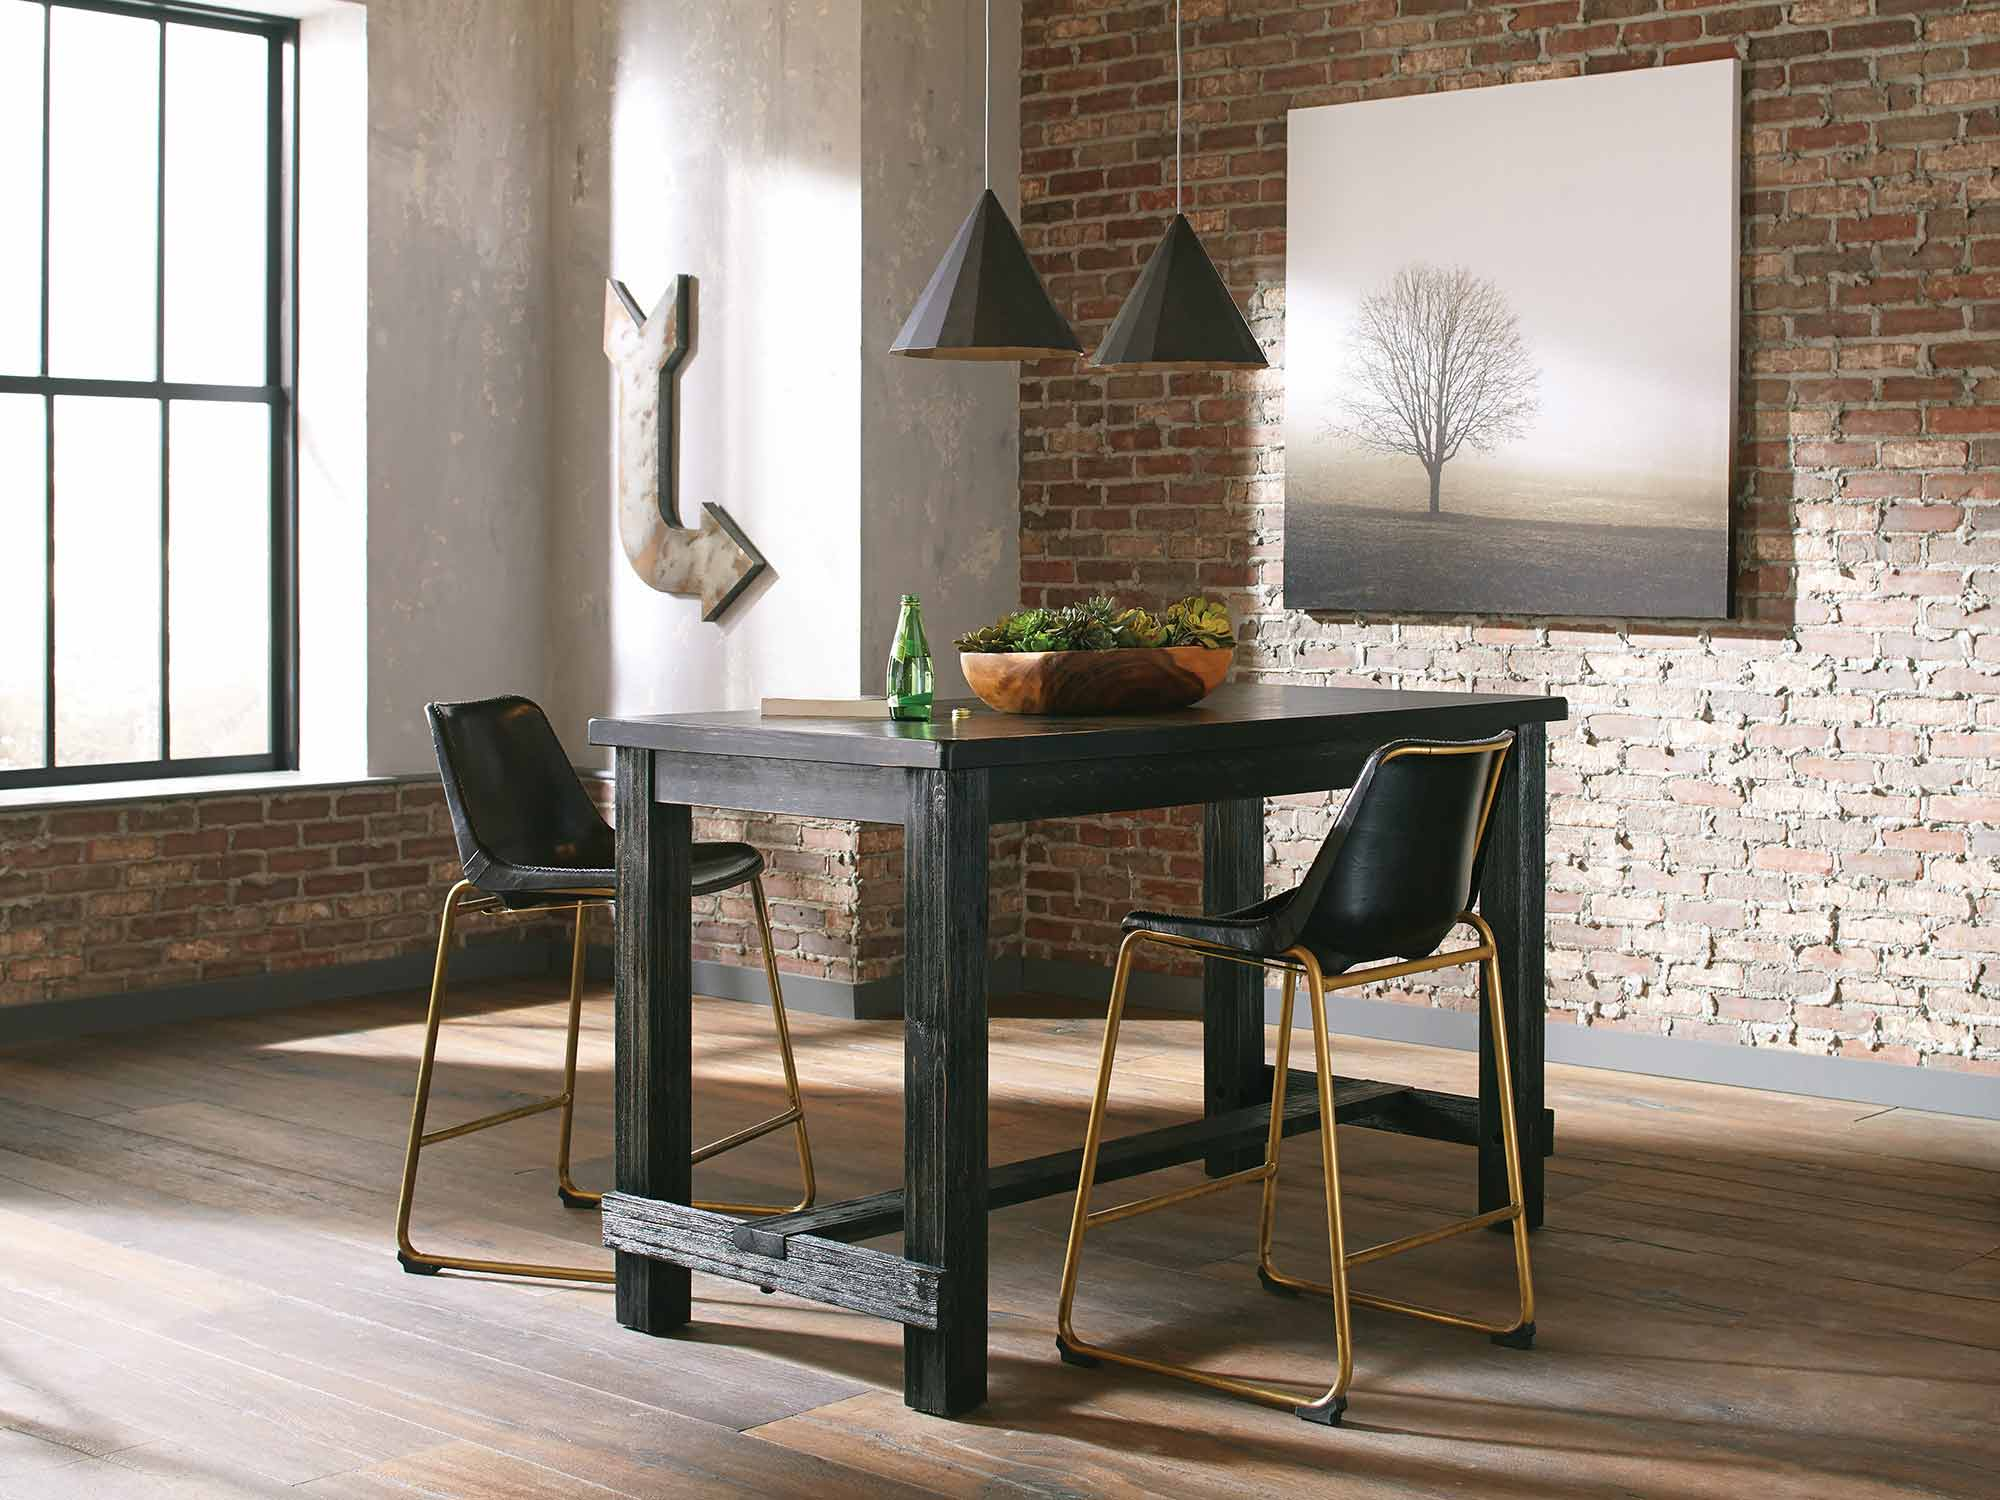 Coaster Bynum Counter Height Dining Set - Antique Black